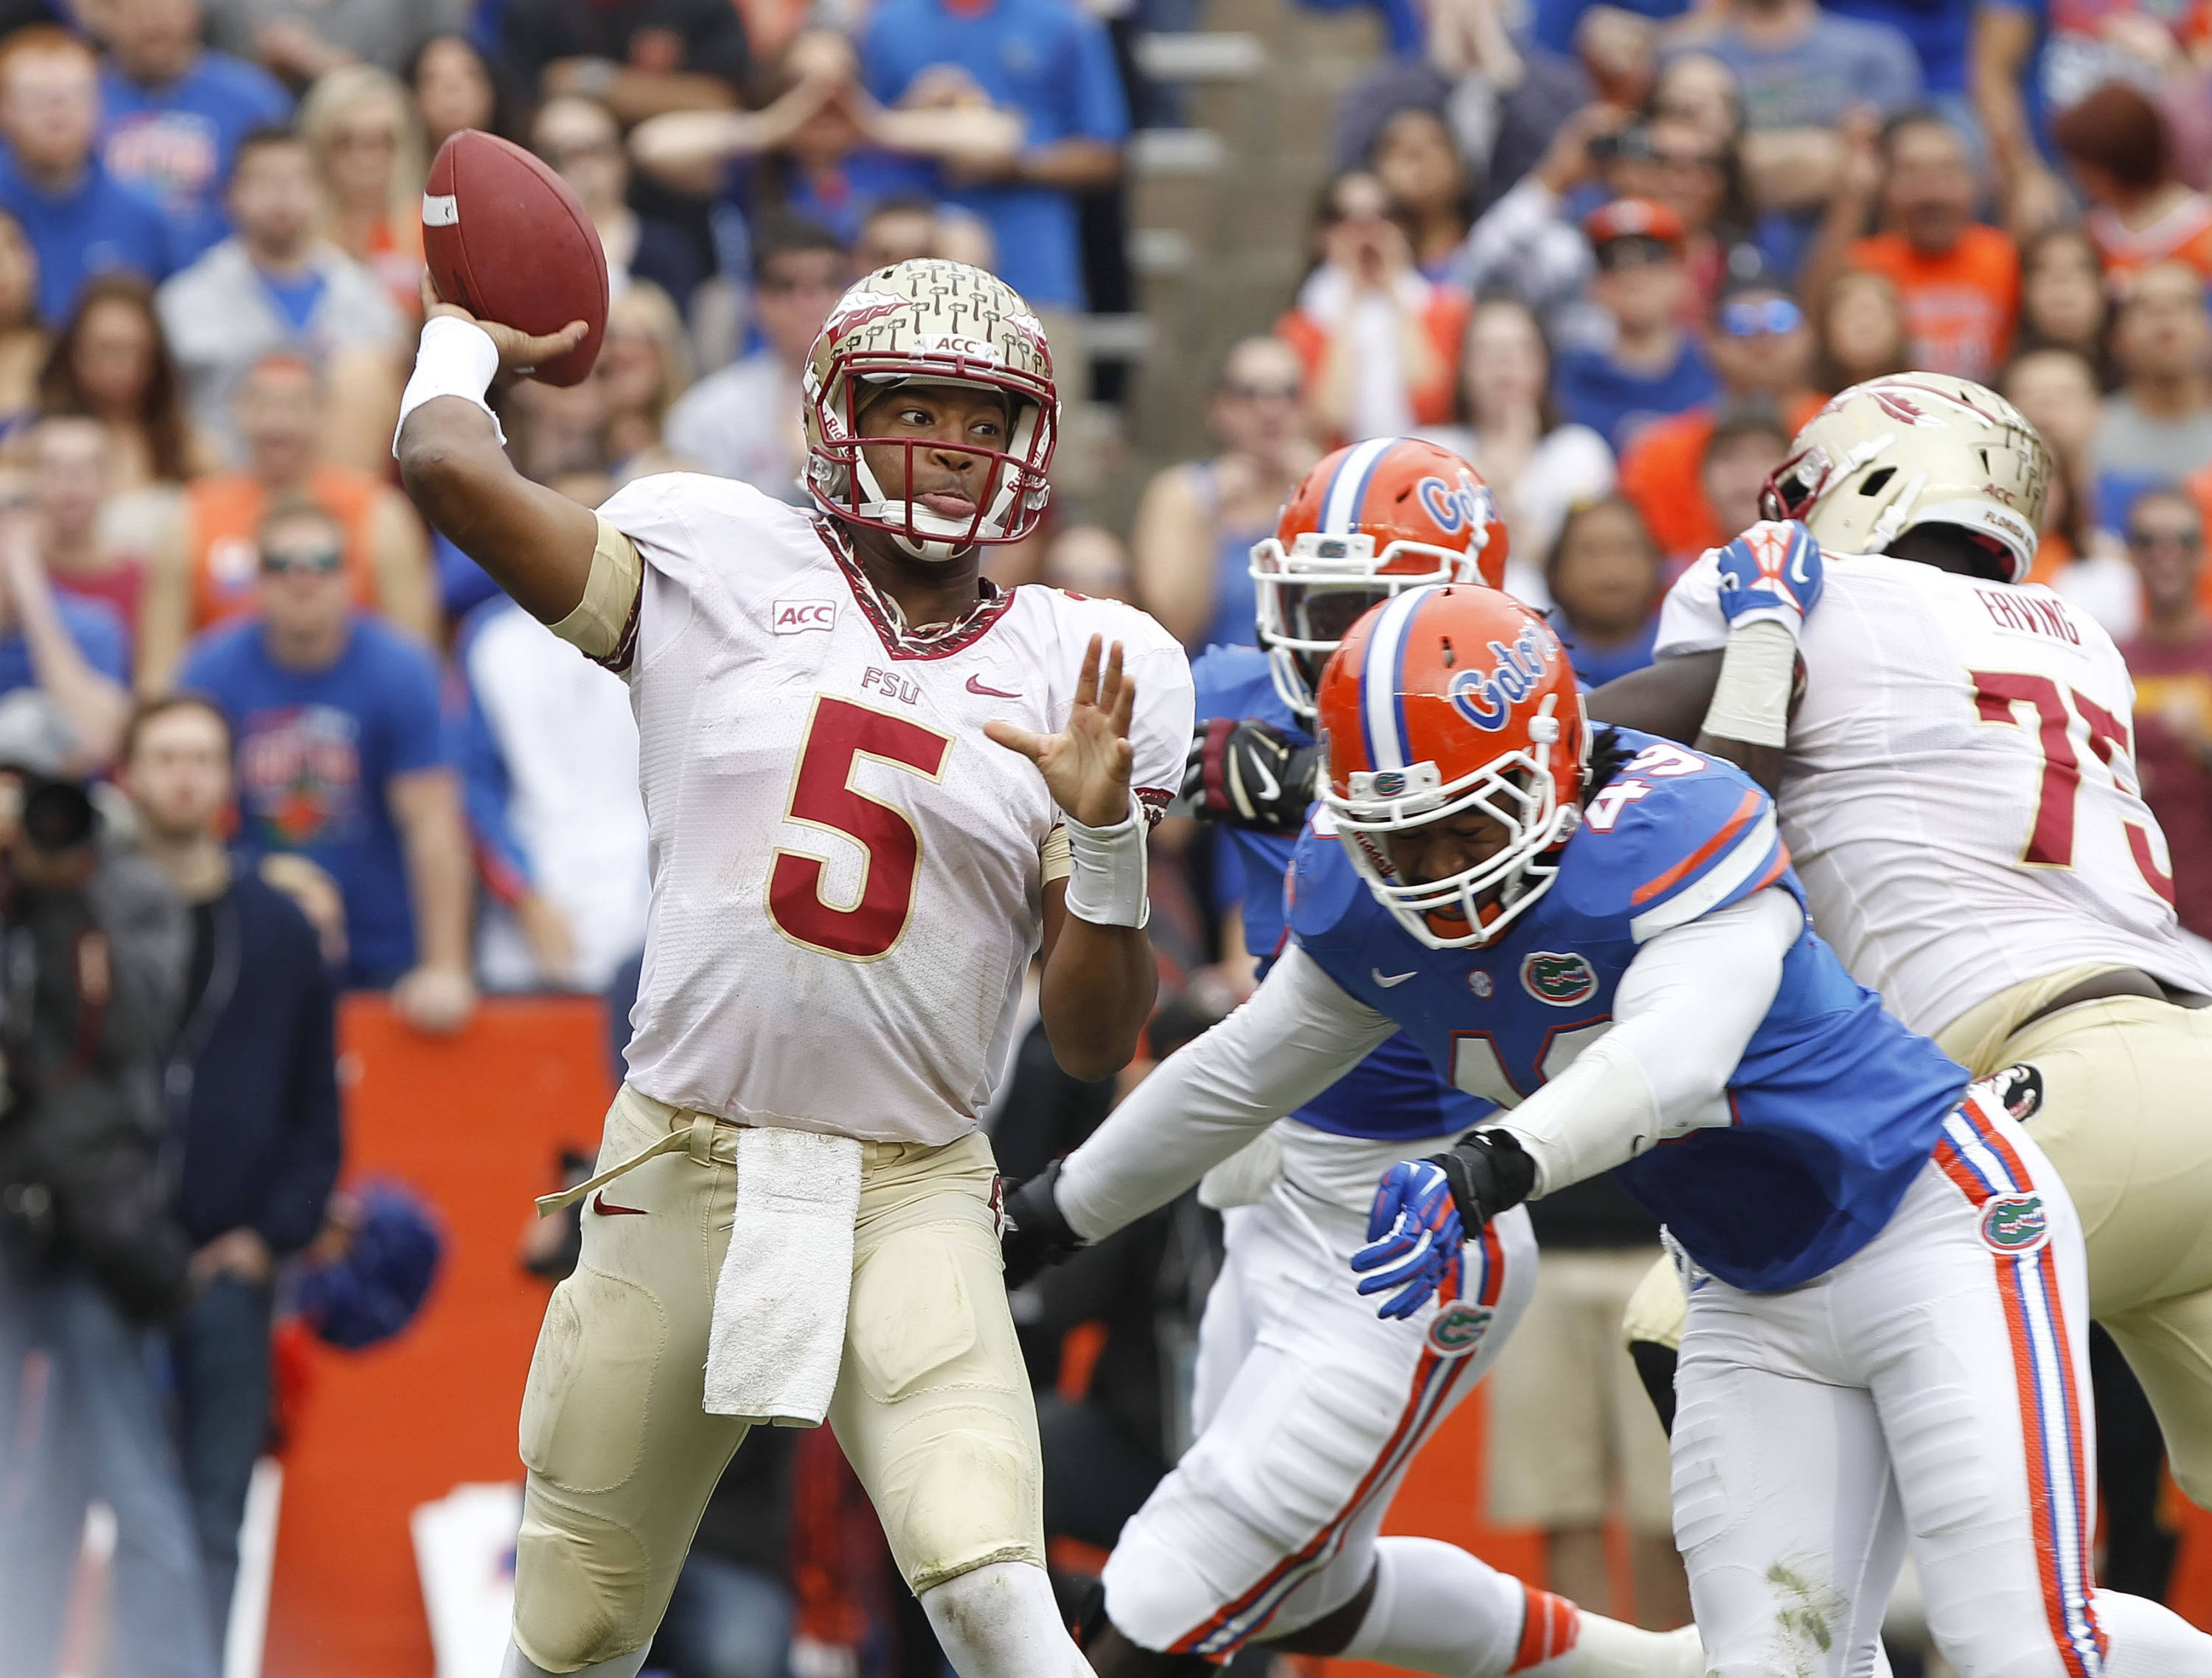 Jameis Winston (5) throws the ball. Mandatory Credit: Kim Klement-USA TODAY Sports